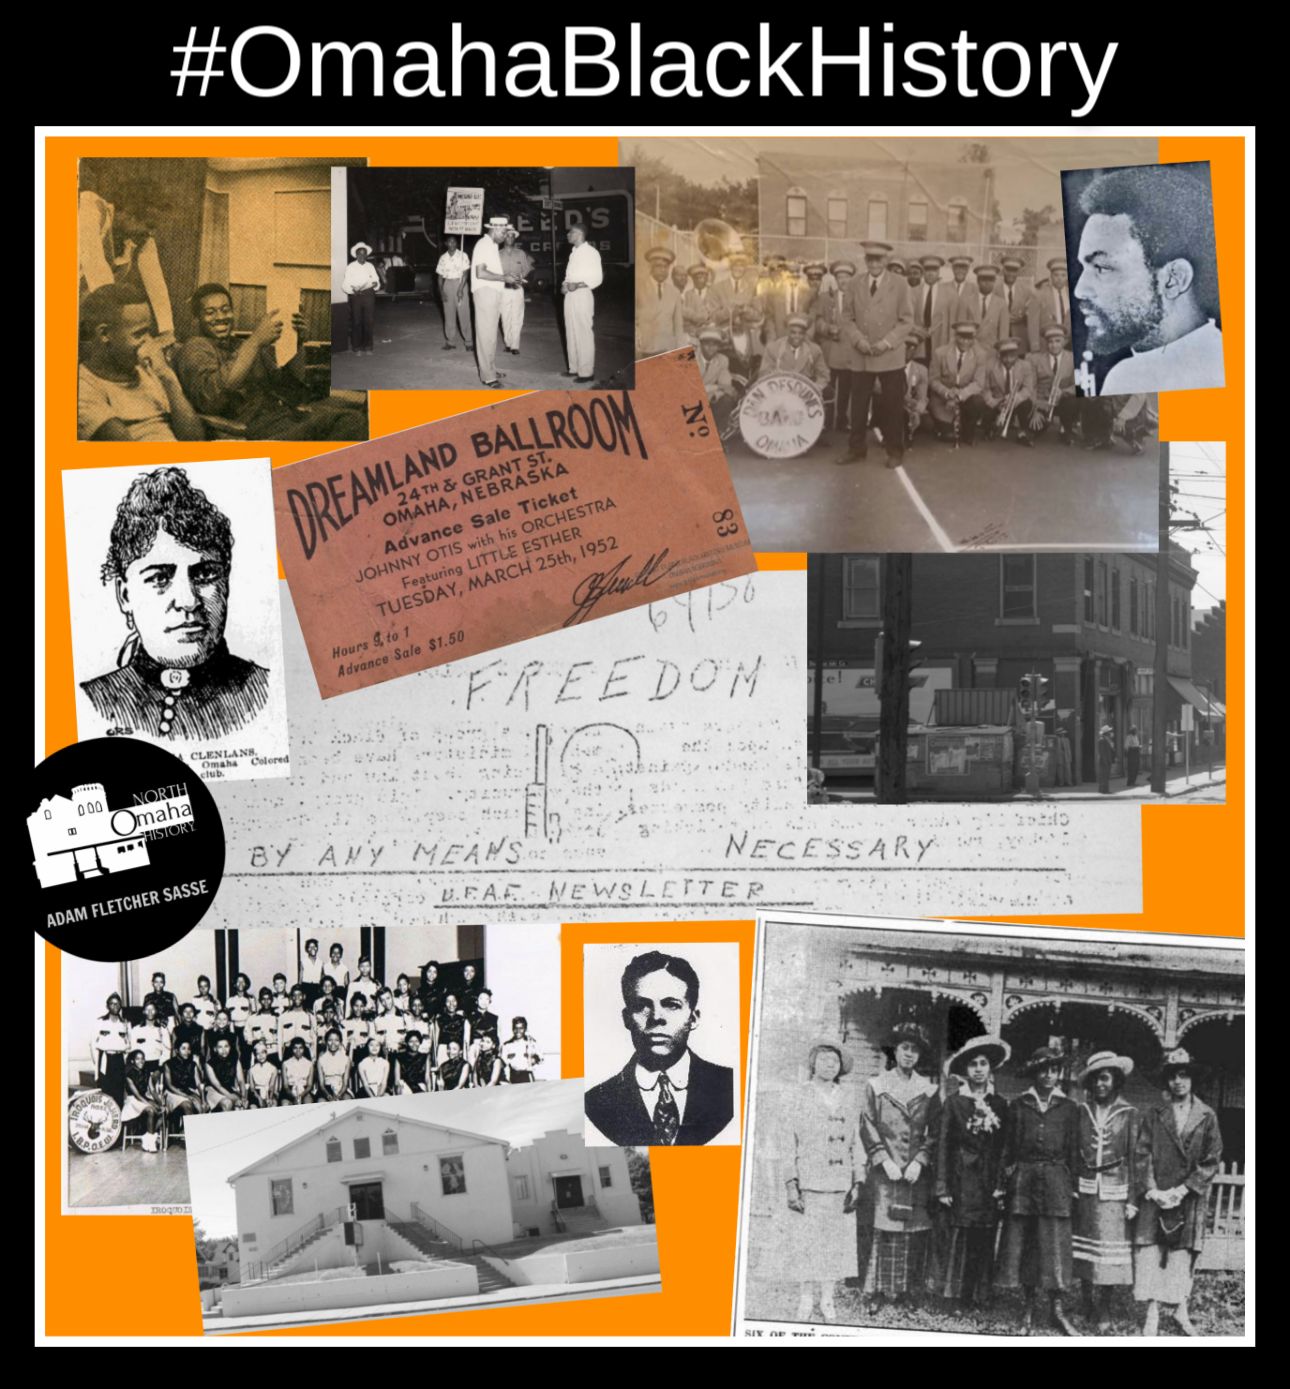 Look for details on your favorite social media with #OmahaBlackHistory